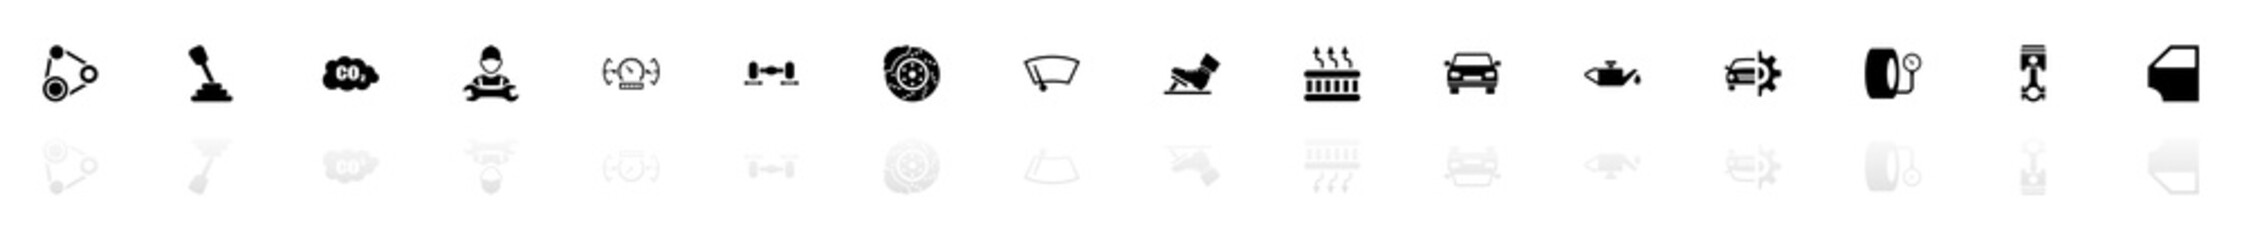 Auto icons - Black horizontal Illustration symbol on White Background with a mirror Shadow reflection. Flat Vector Icon.